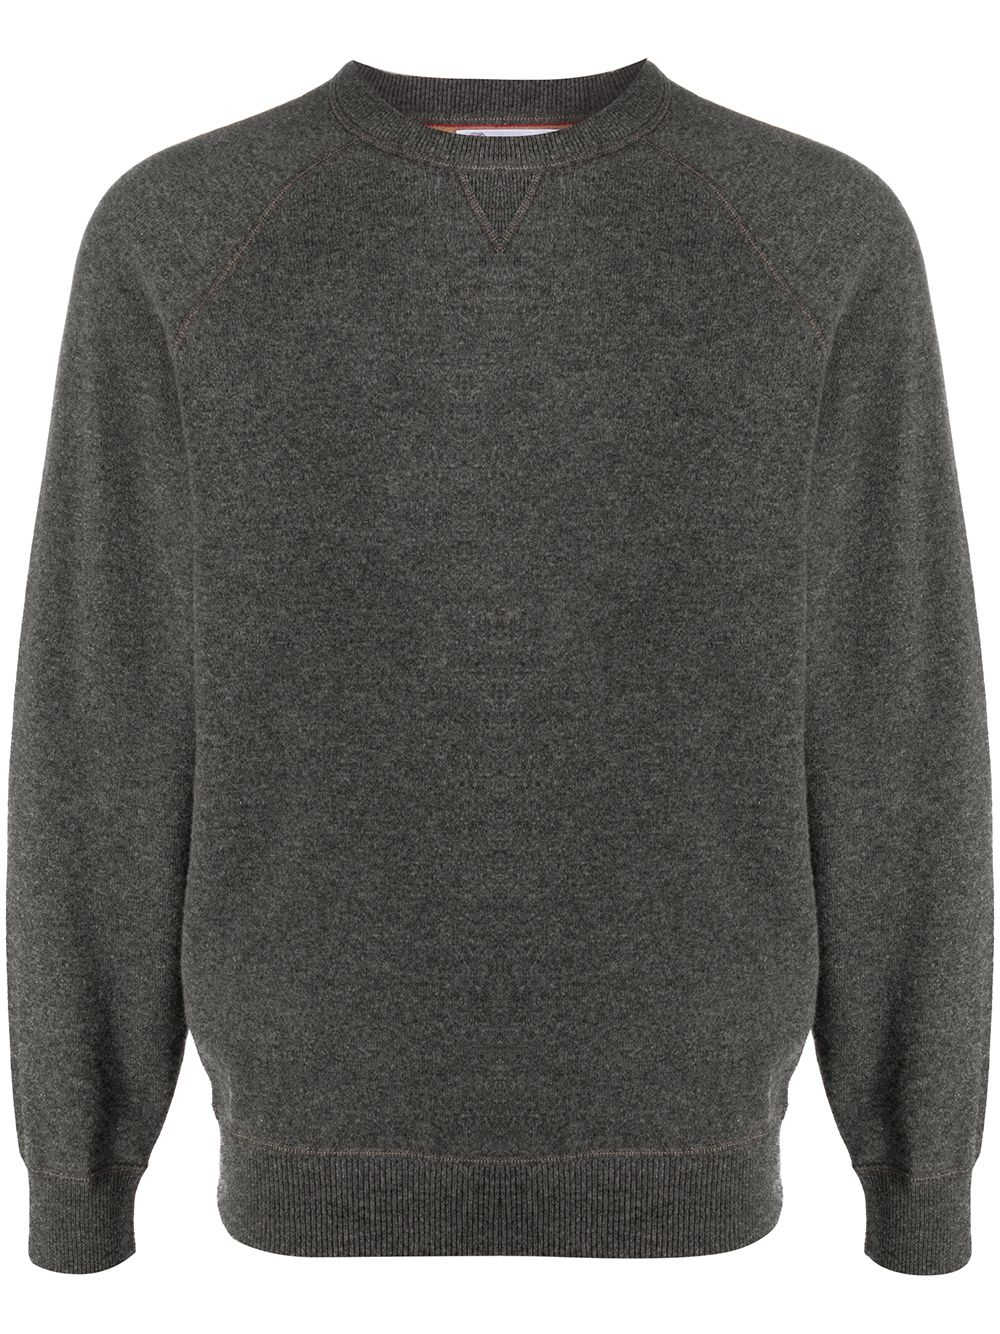 Wool Cashmere Blend Sweater